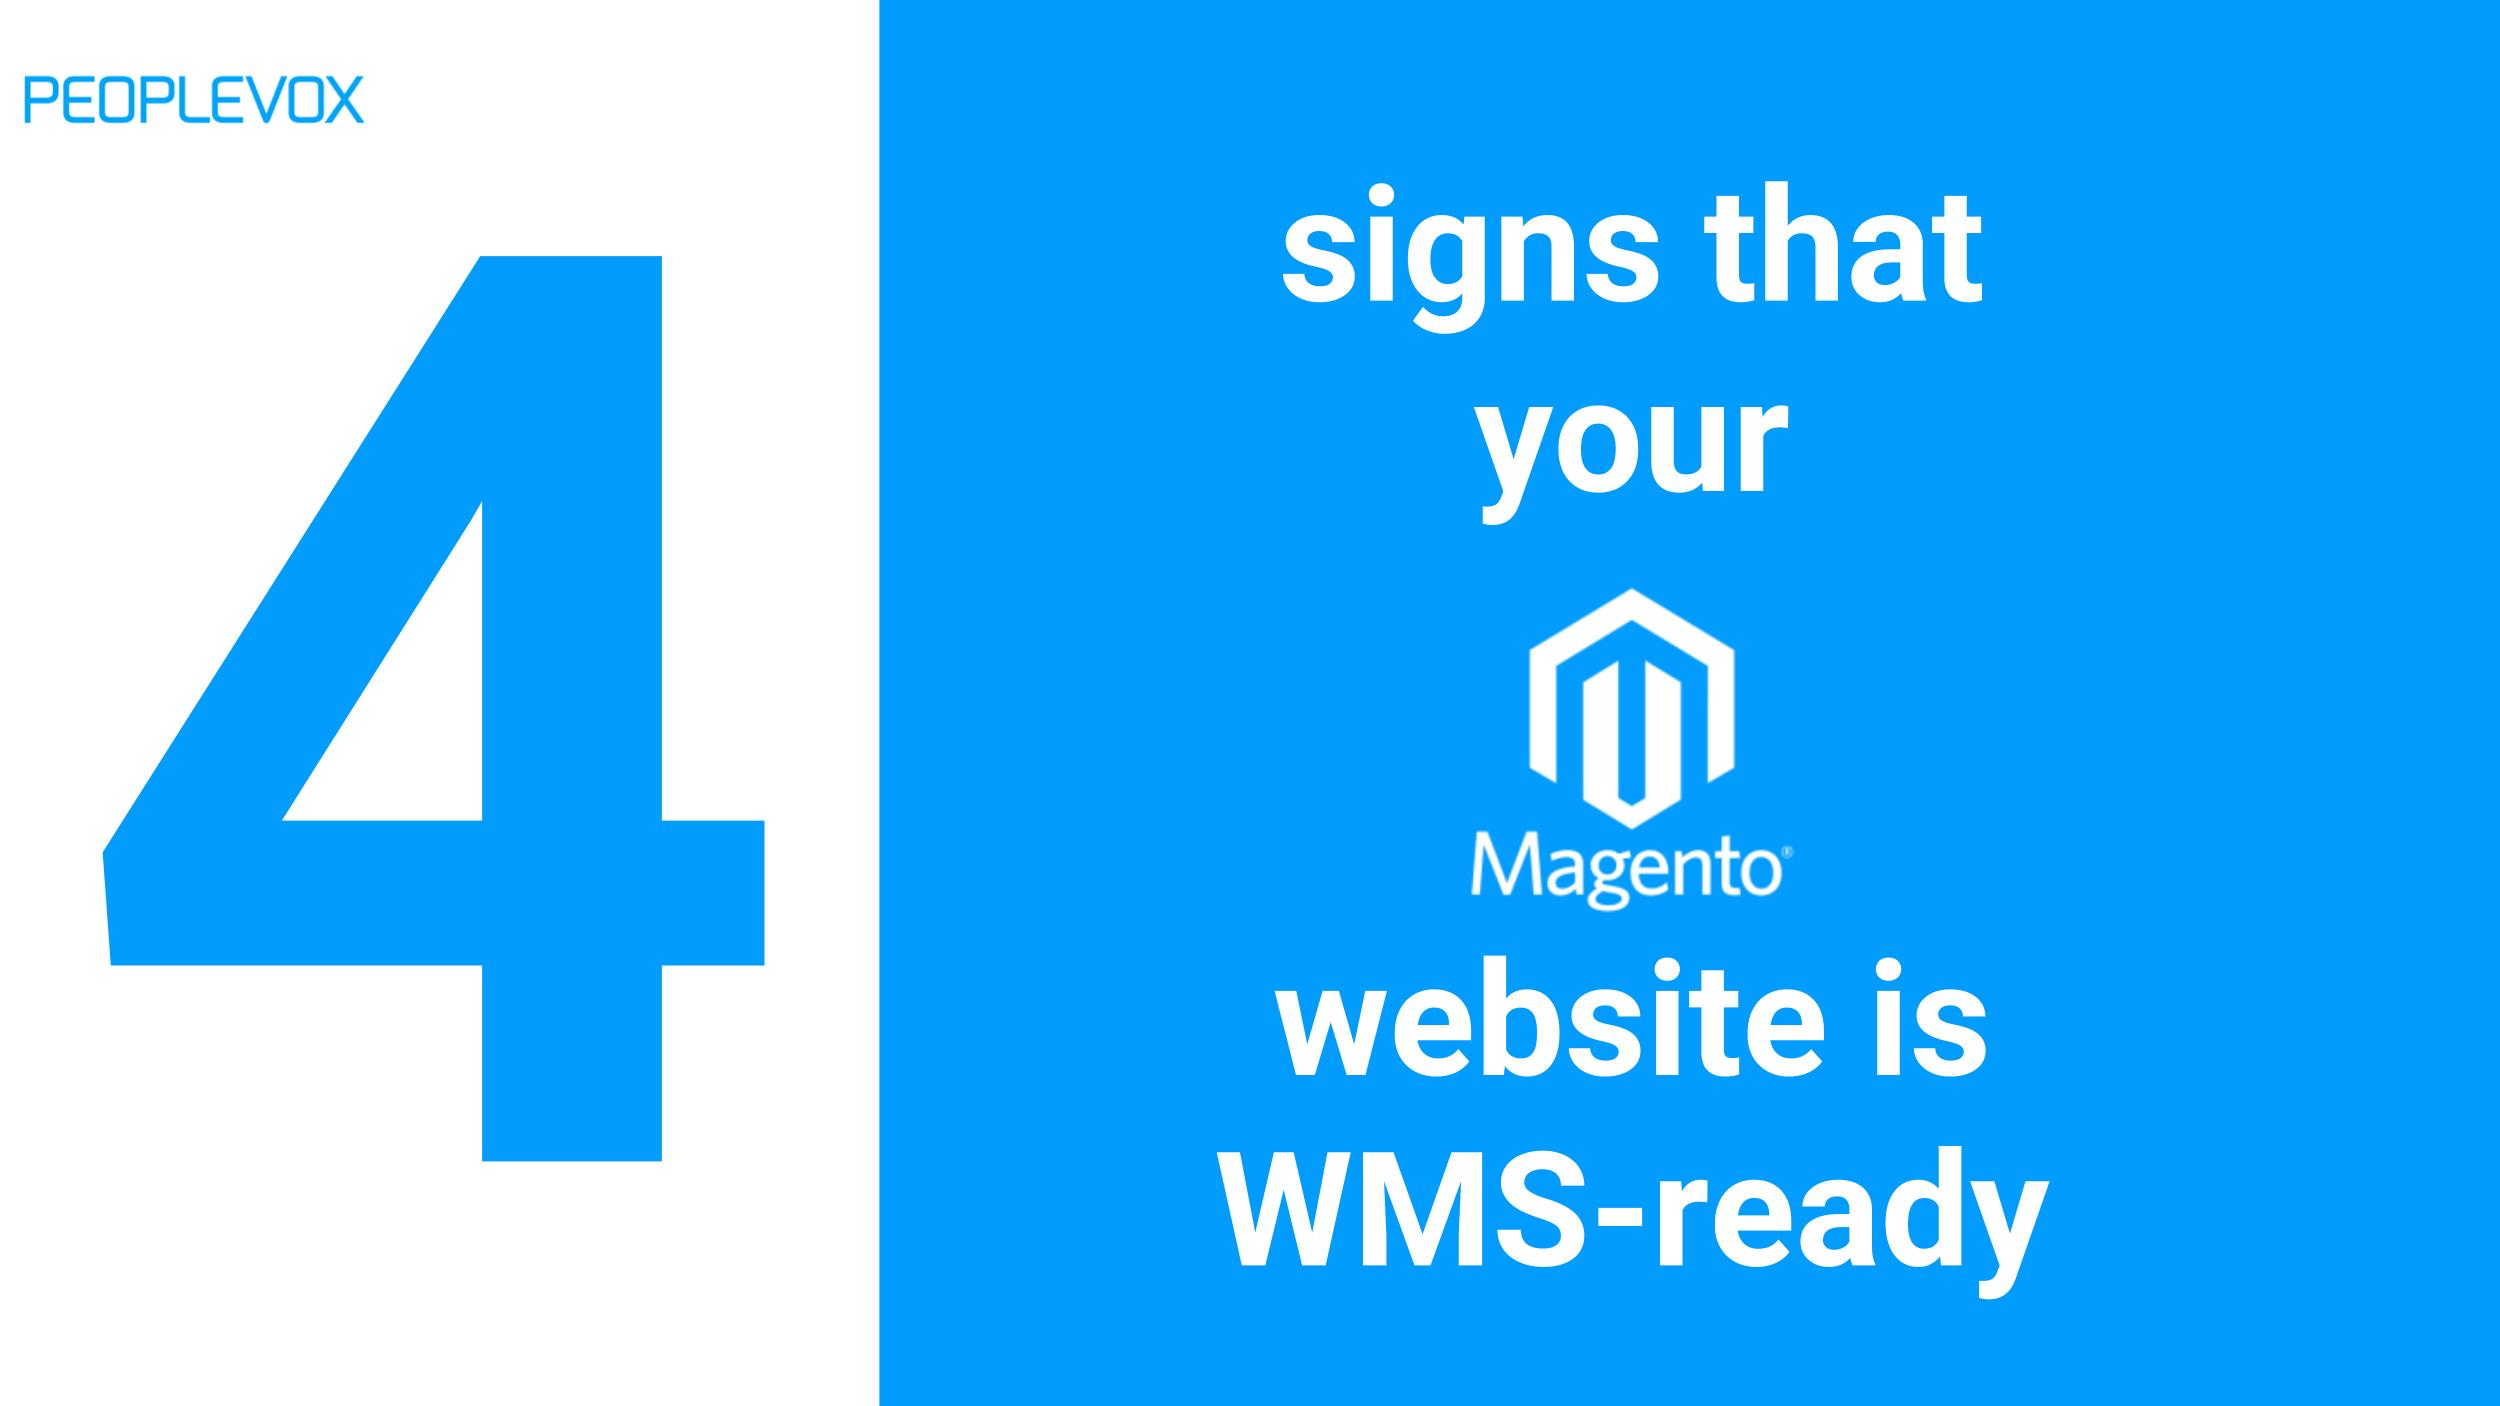 4 signs that your Magento website is ready for a WMS.jpg